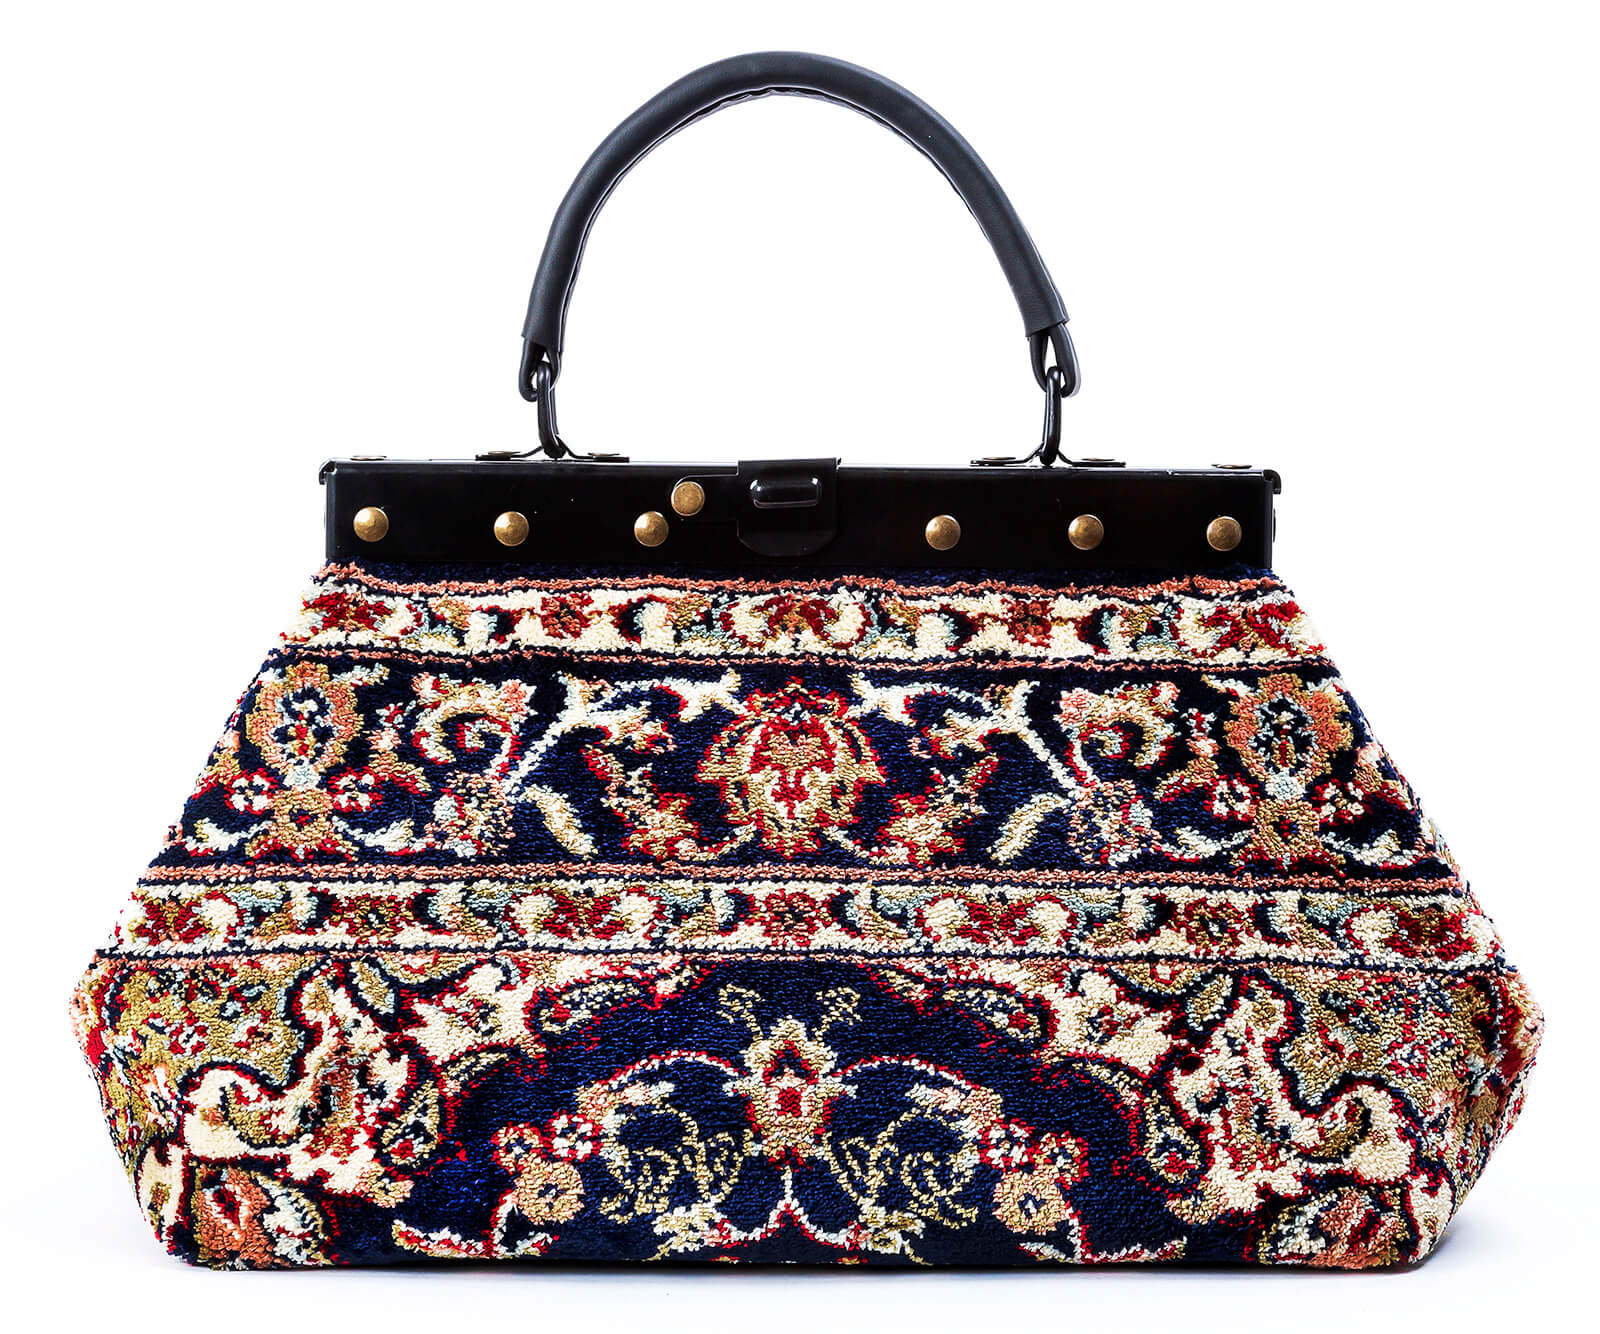 Image of EXQUISITE Palace Navy Victorian Carpet Bag.